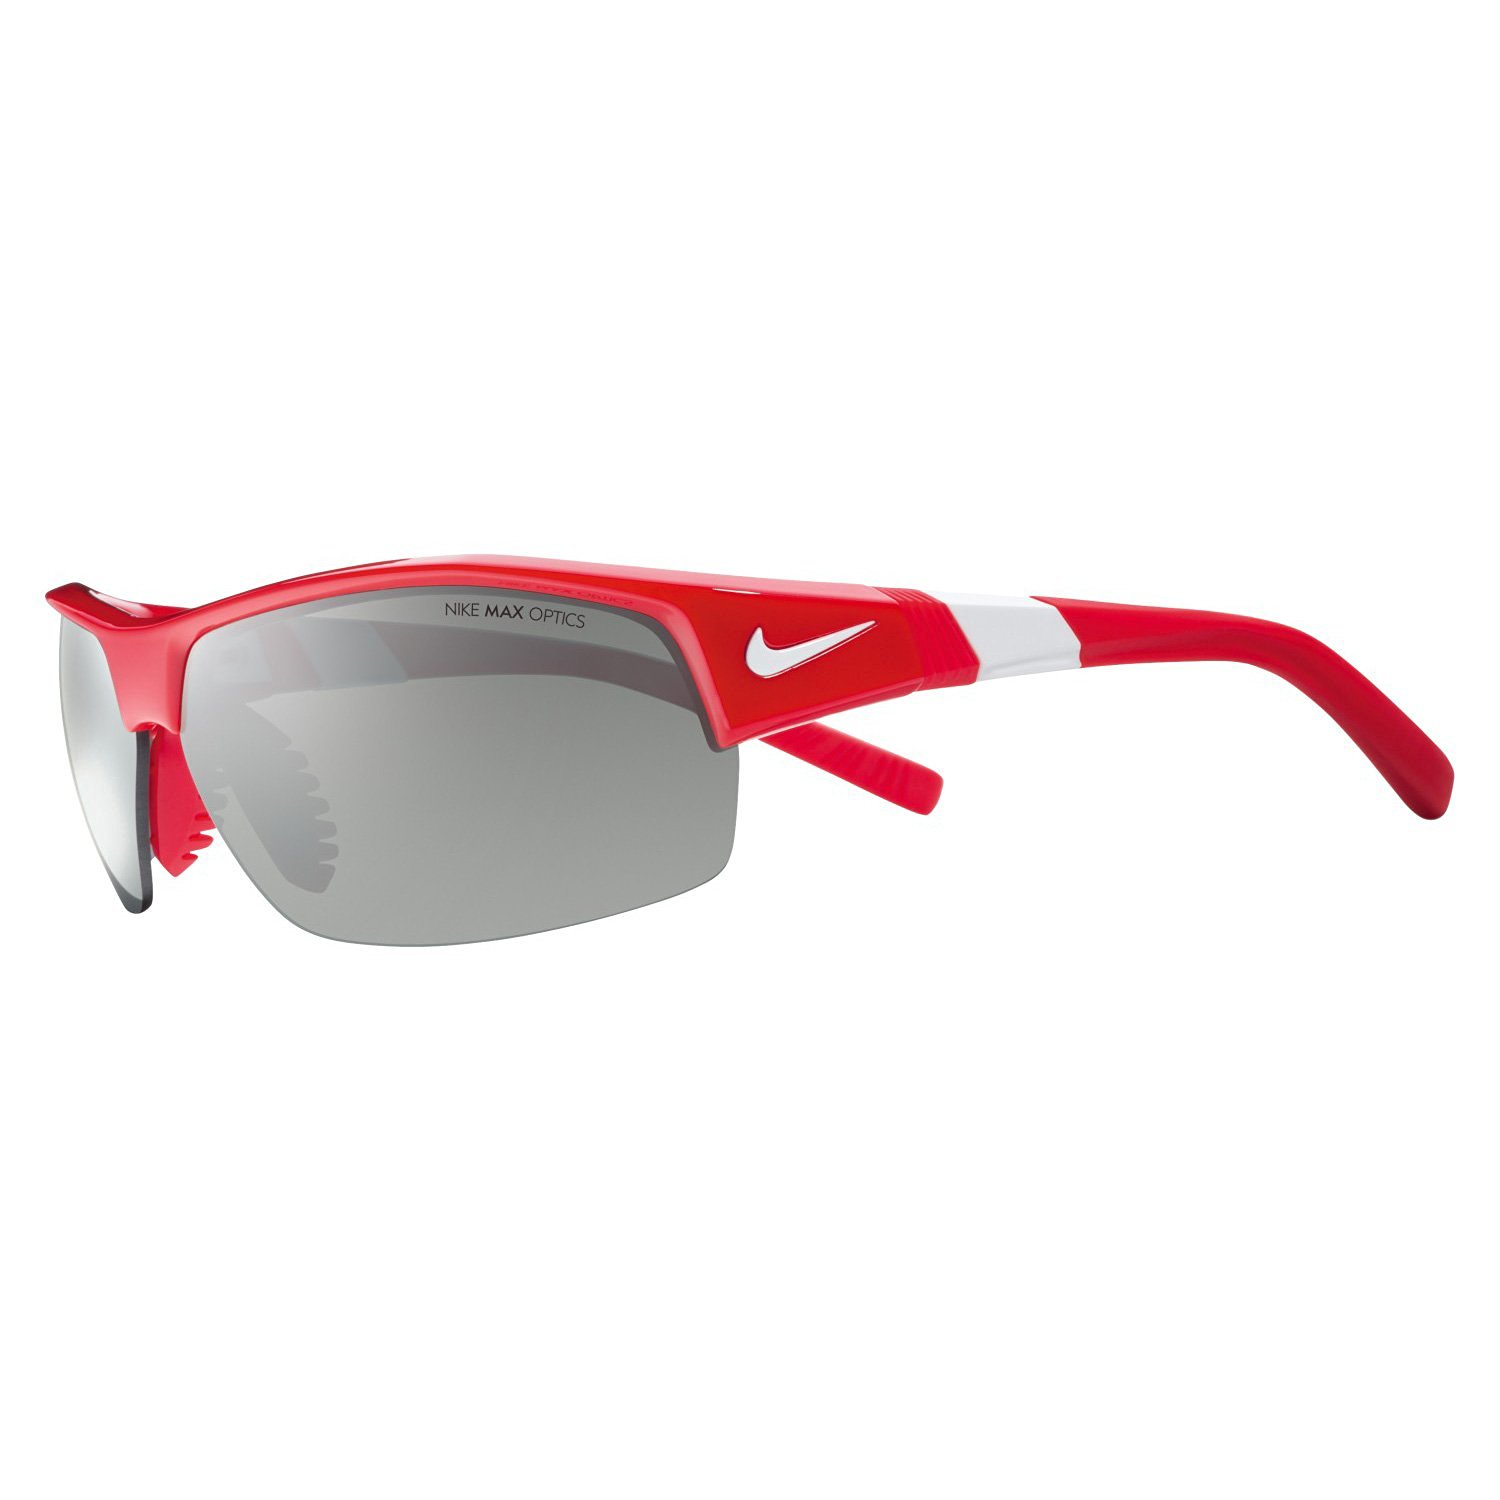 ee460611315 Get Quotations · Nike Golf Show X2 Sunglasses